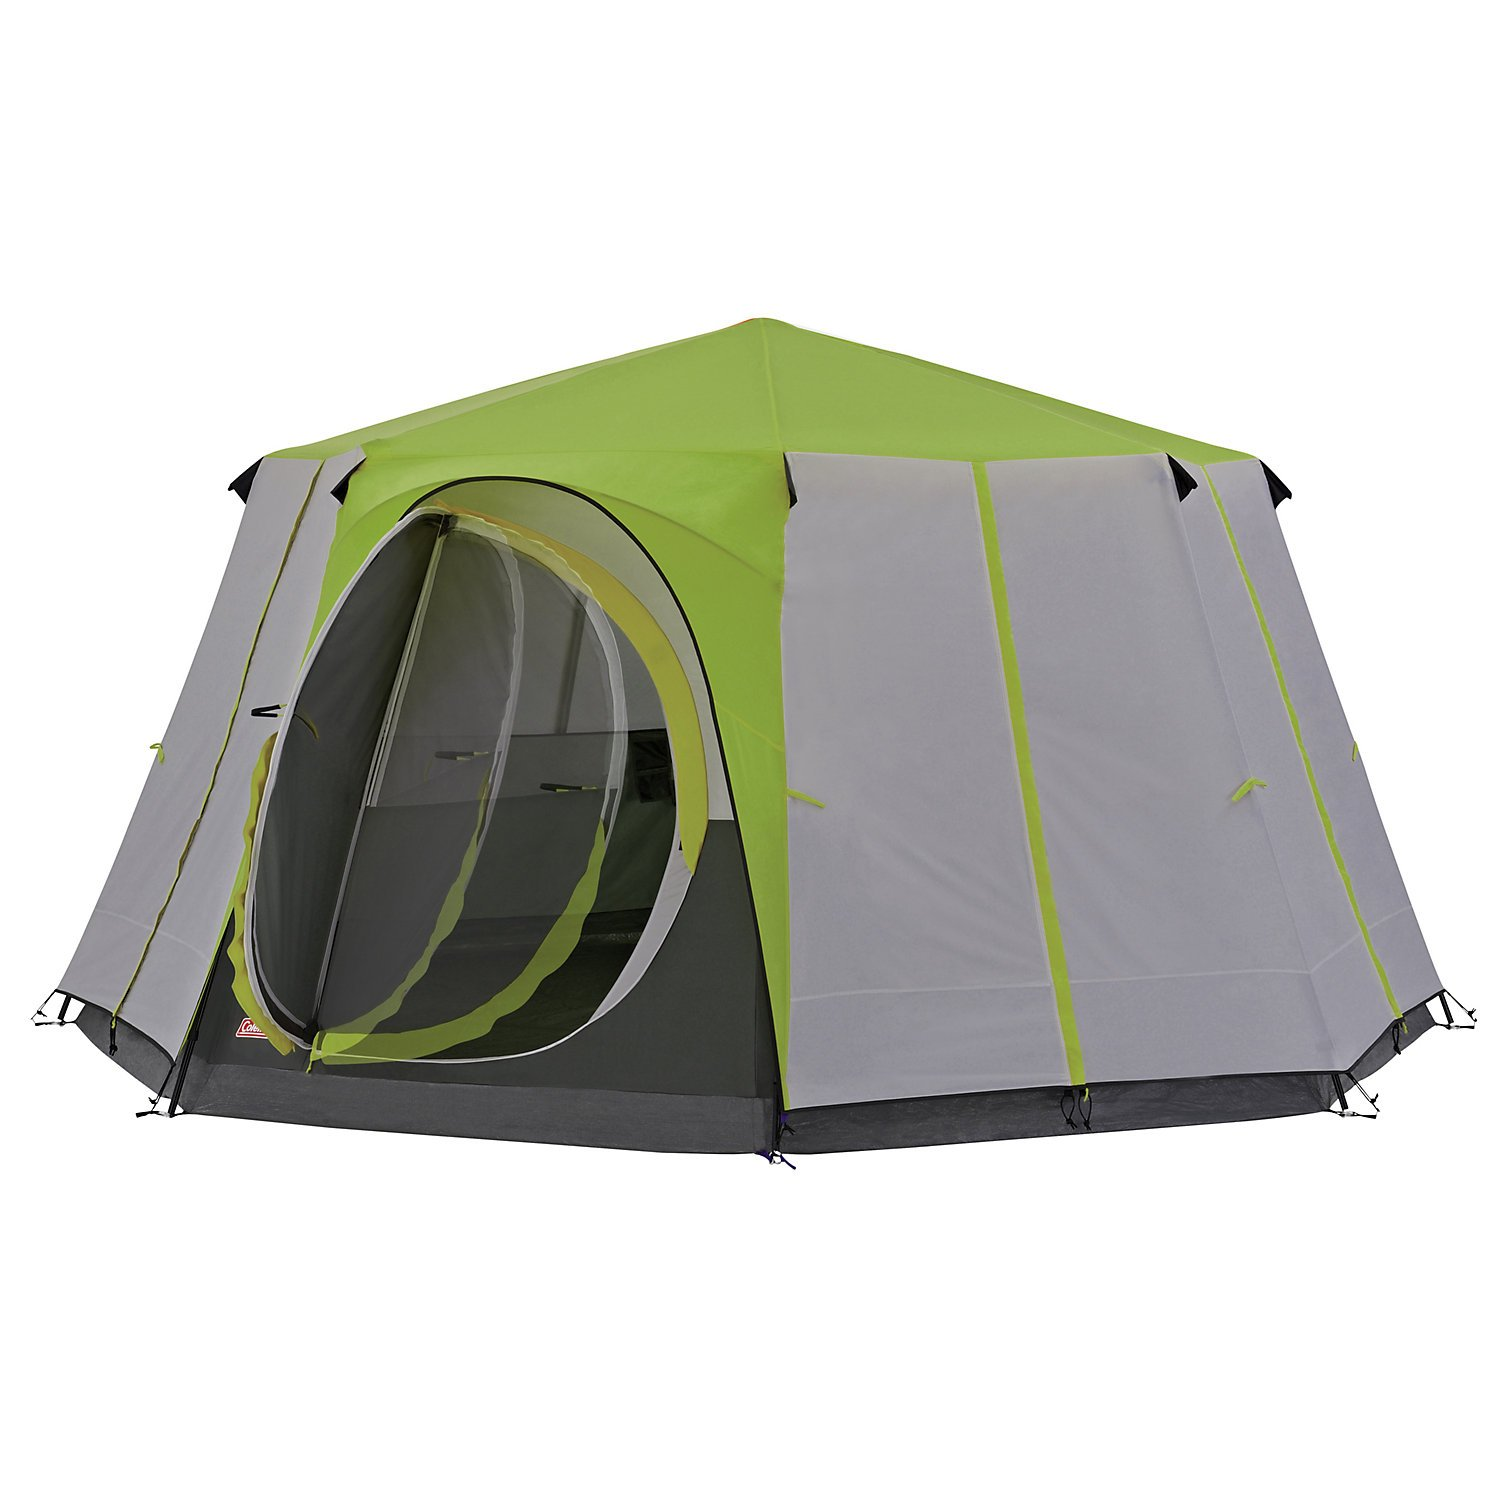 The Coleman Cortes Octagon 8 man tent is a great family tent with a large single room that offers ...  sc 1 st  Best Aussie Reviews & Best Family Tents Australia 2018 - Ultimate Aussie Buyers Guide